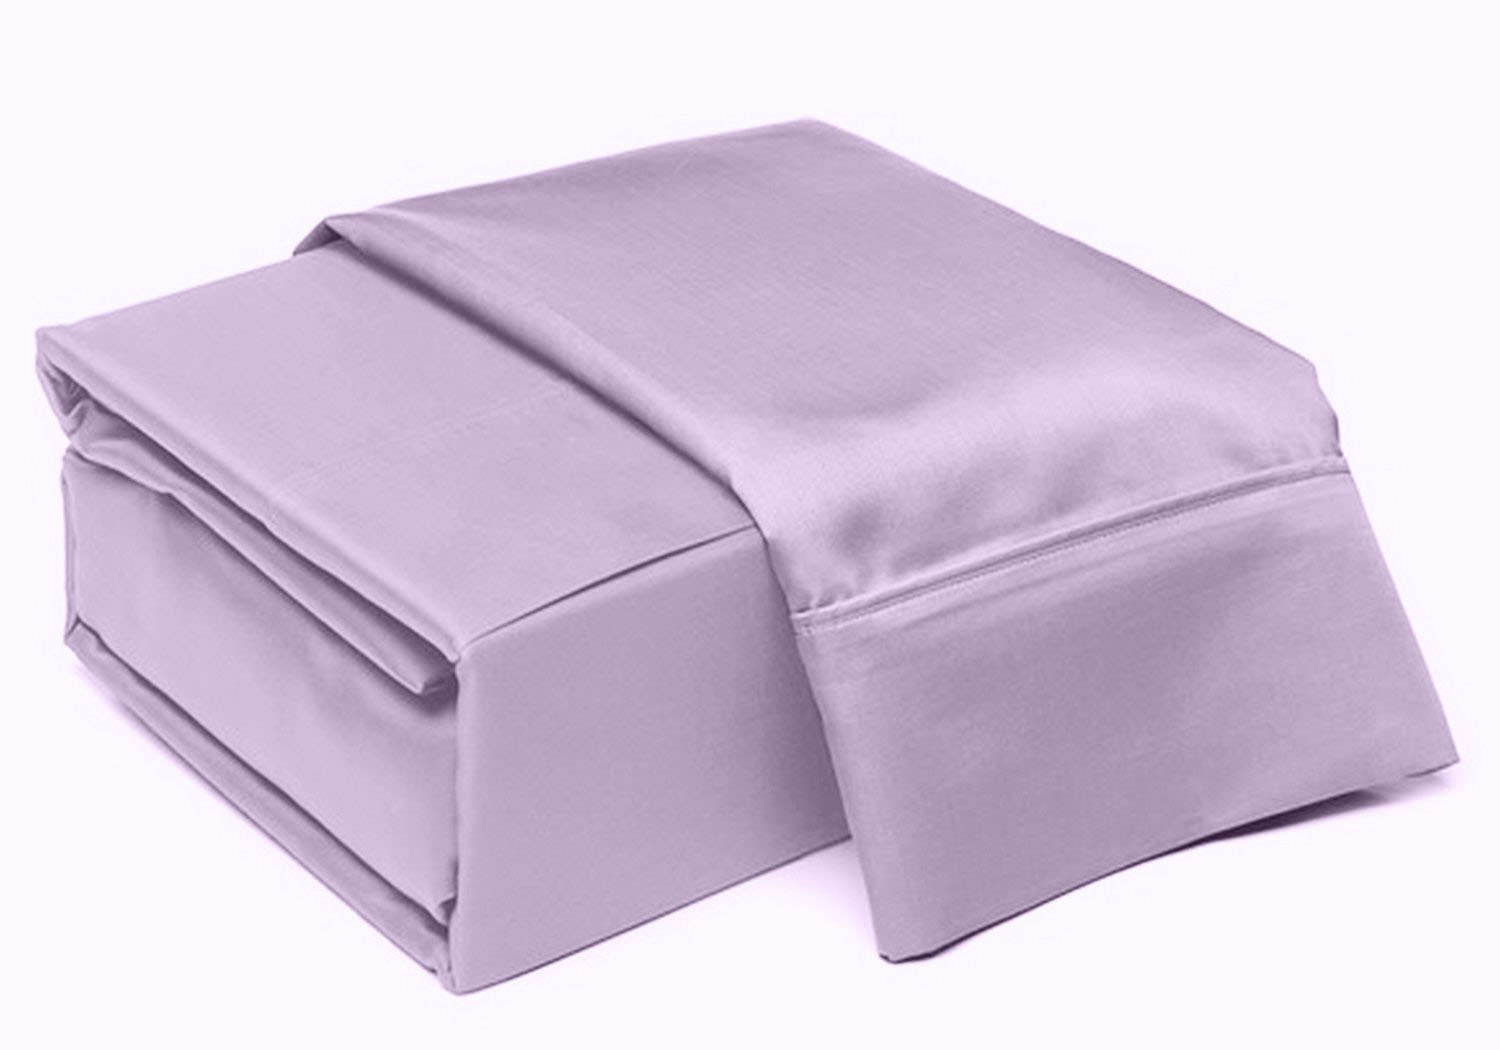 54x80 Luxury Soft Egyptian Cotton Fitted Sheet for Full XL Size 1 Piece Bedding Fitted Sheet 600 Thread Count Burgundy Solid Mattress